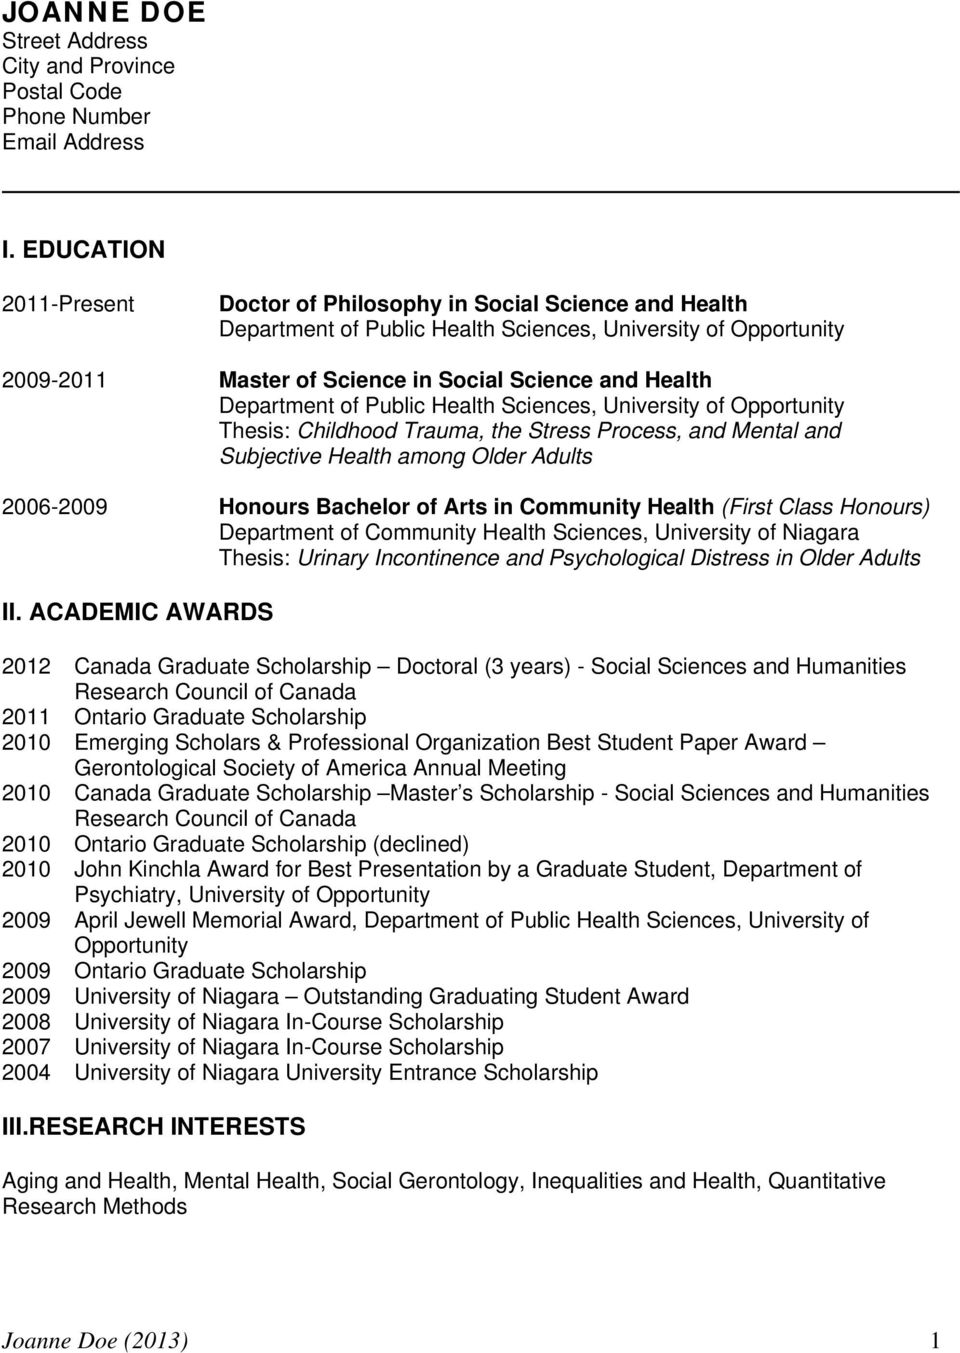 Department of Public Health Sciences, University of Opportunity Thesis: Childhood Trauma, the Stress Process, and Mental and Subjective Health among Older Adults 2006-2009 Honours Bachelor of Arts in